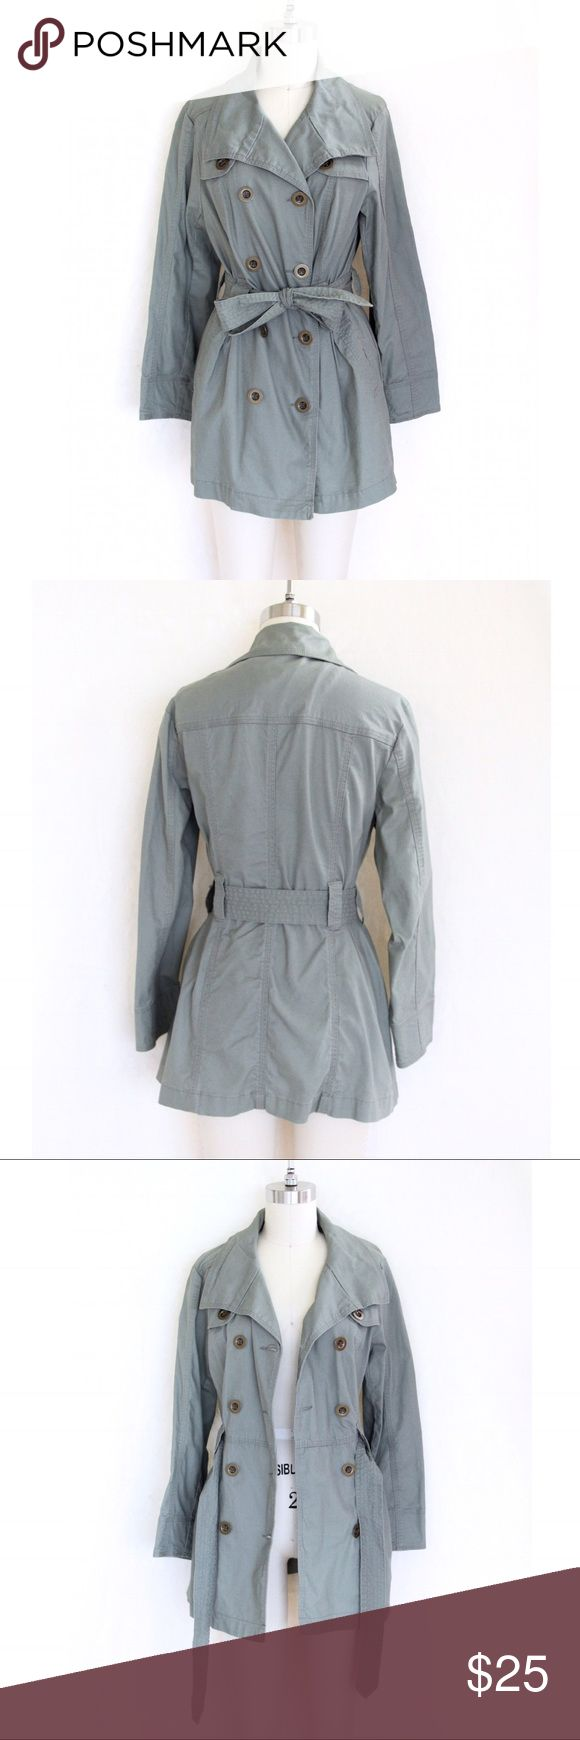 Light Olive Green Trench Coat This lightweight trench coat is perfect for spring! Incredibly comfortable and chic! And it's in excellent condition! Style & Co Jackets & Coats Trench Coats